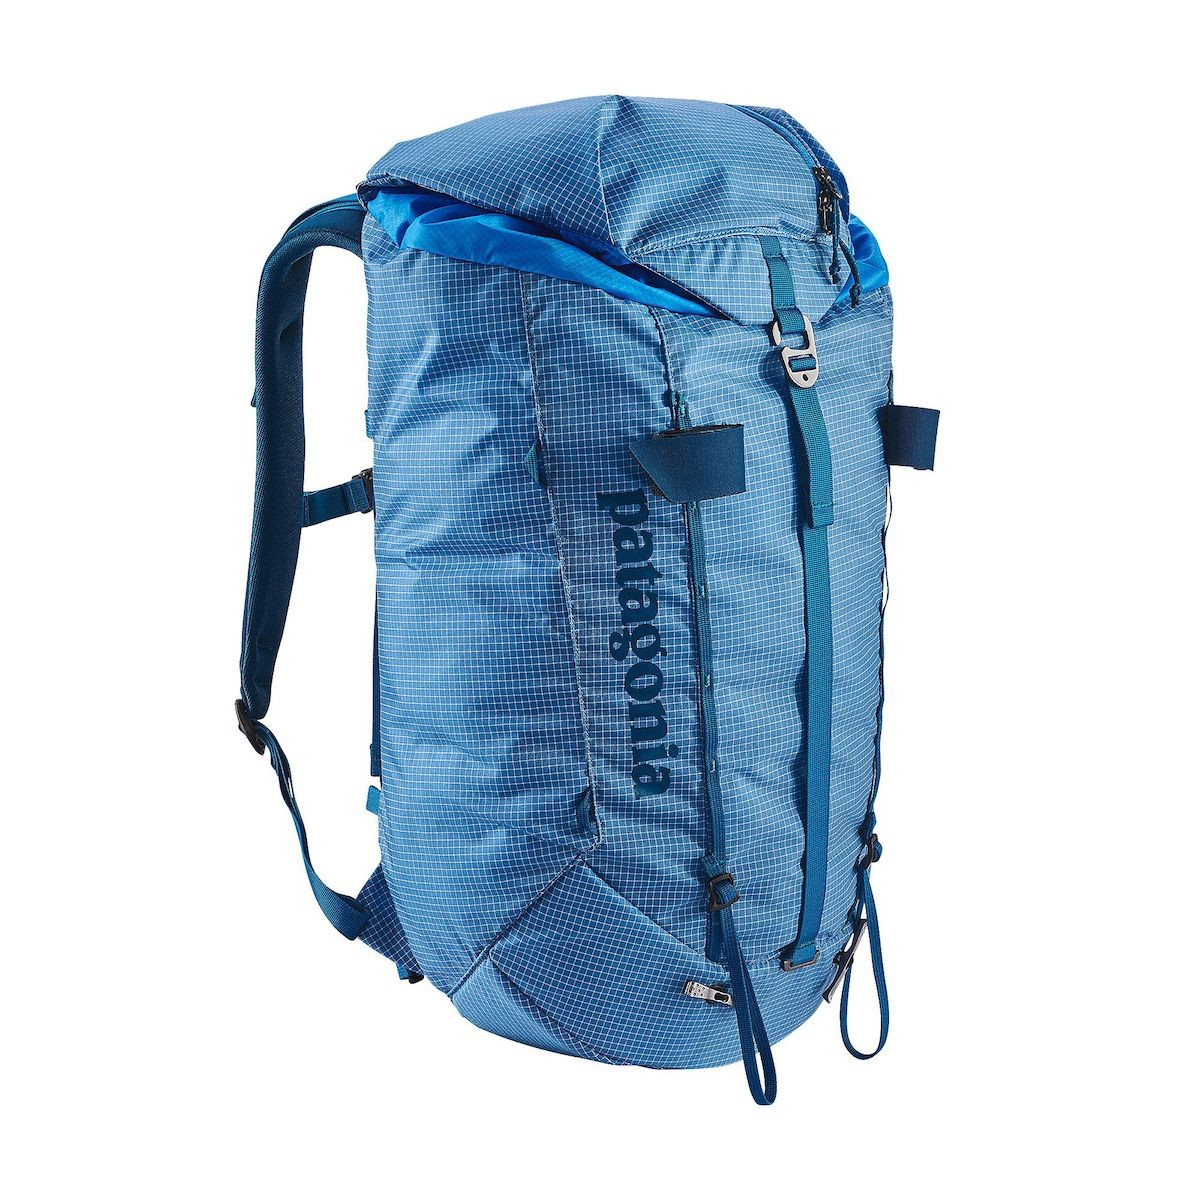 Patagonia Ascensionist Pack 30l Radar Blue Patagonia Ascensionist Pack 30l  Radar Blue ... 2772459407fc9